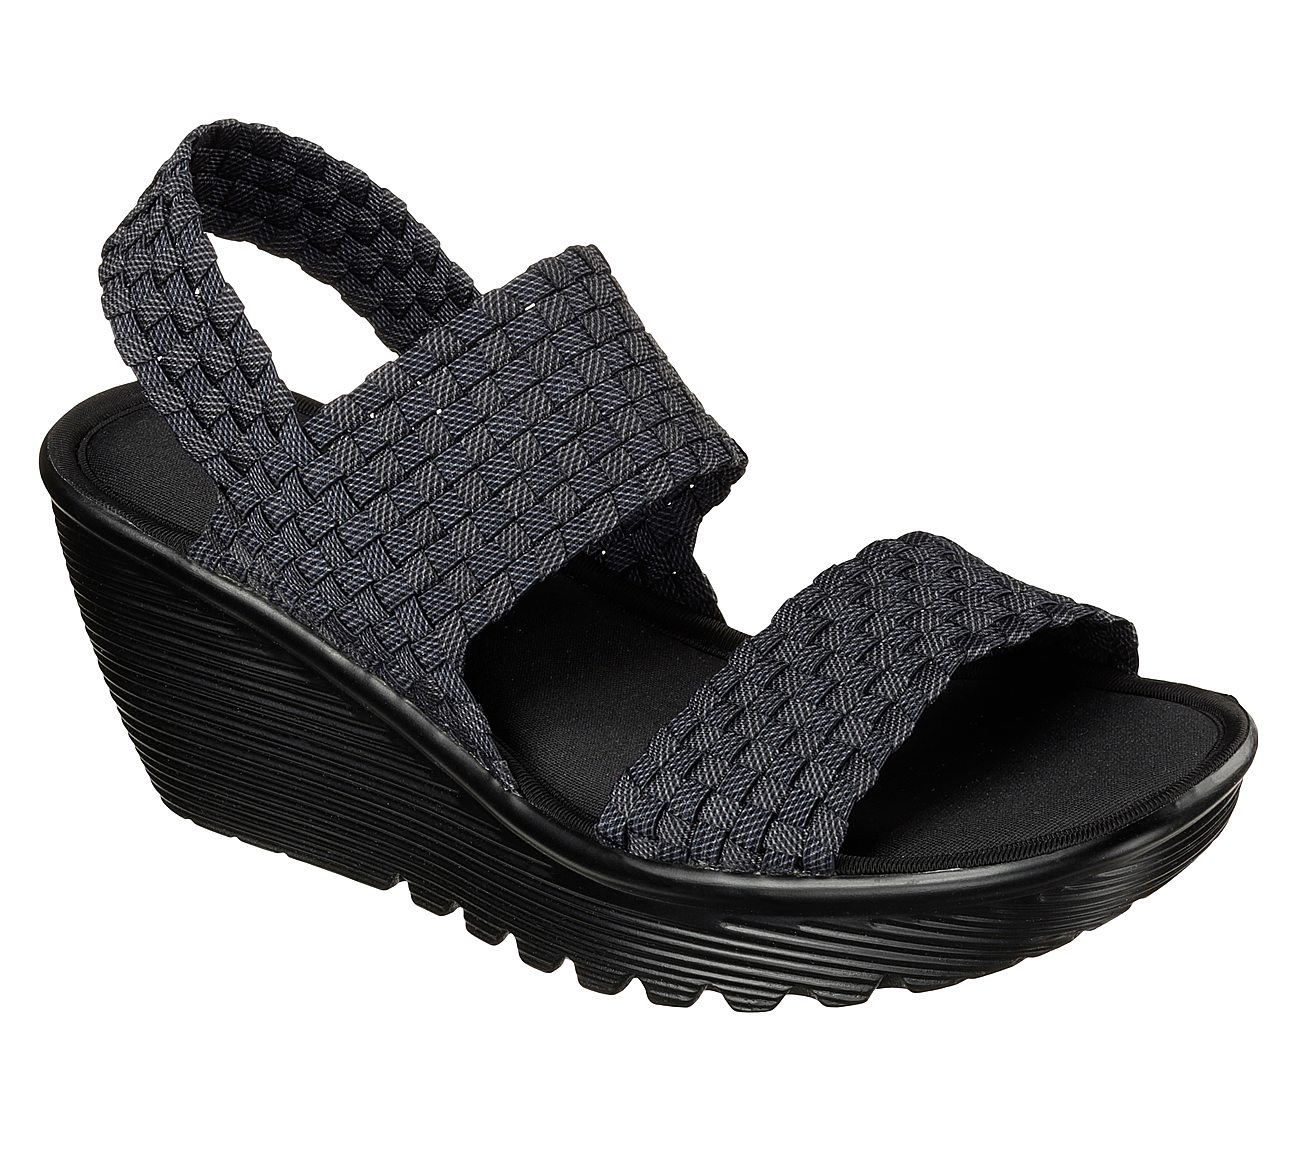 d9d3be2f4d8e Buy SKECHERS Parallel - Midsummers Weave Wedge Sandals Shoes only  59.00